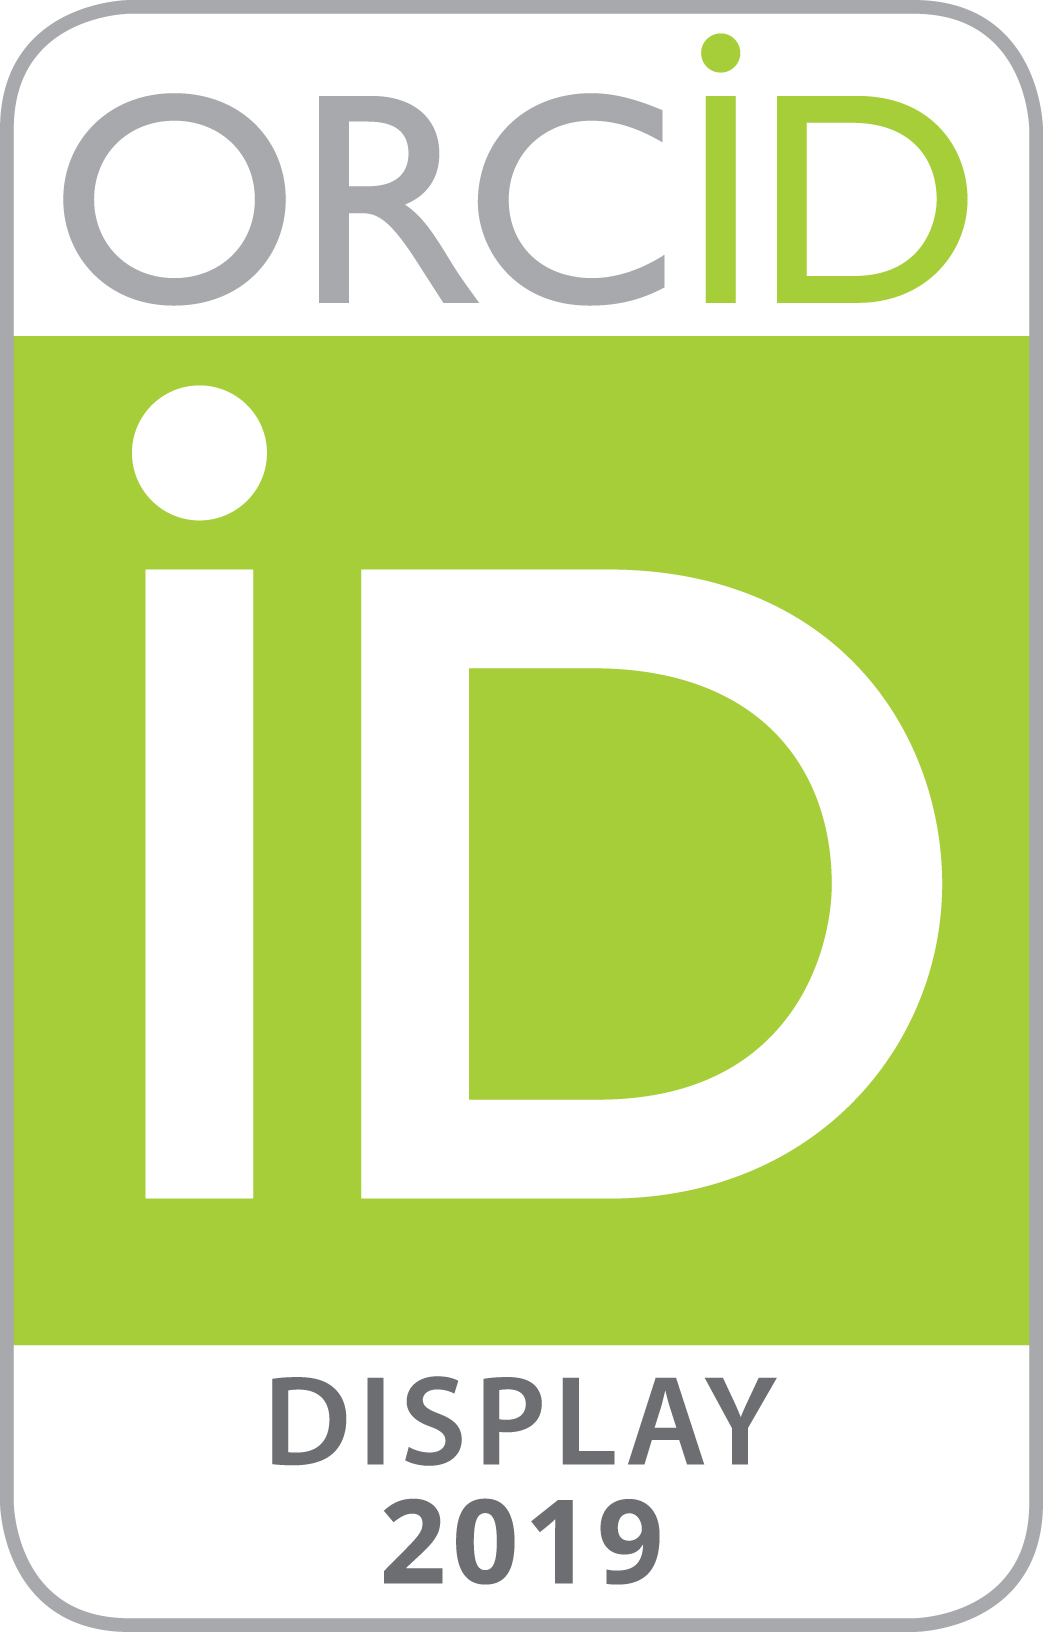 ORCID AUTHENTICATE DISPLAY 2019